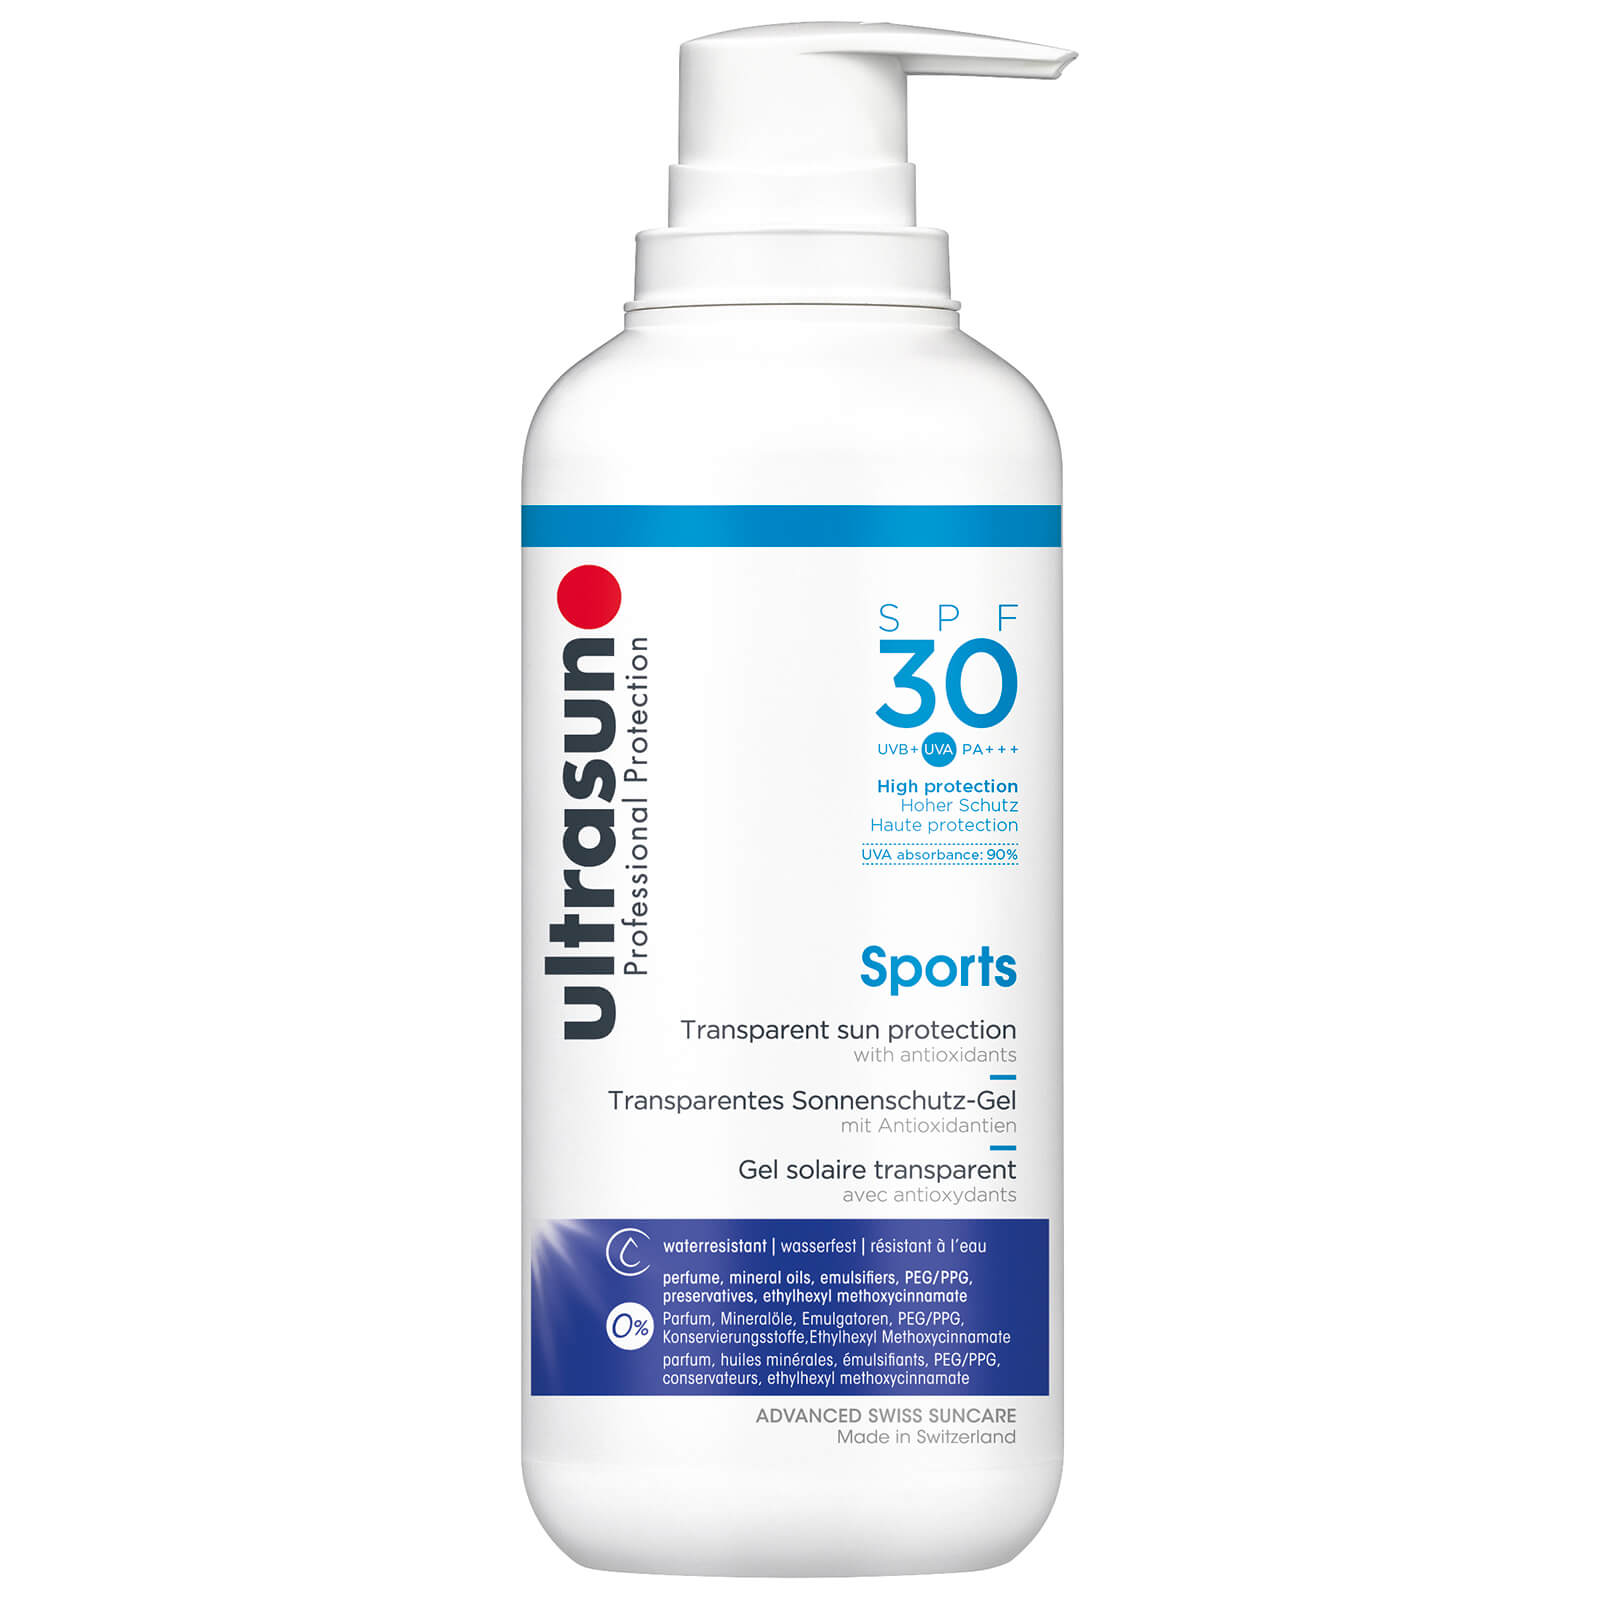 69b09626986490 Ultrasun Transparent Sun Protection Sports Gel SPF30 400ml | Free Shipping  | Lookfantastic